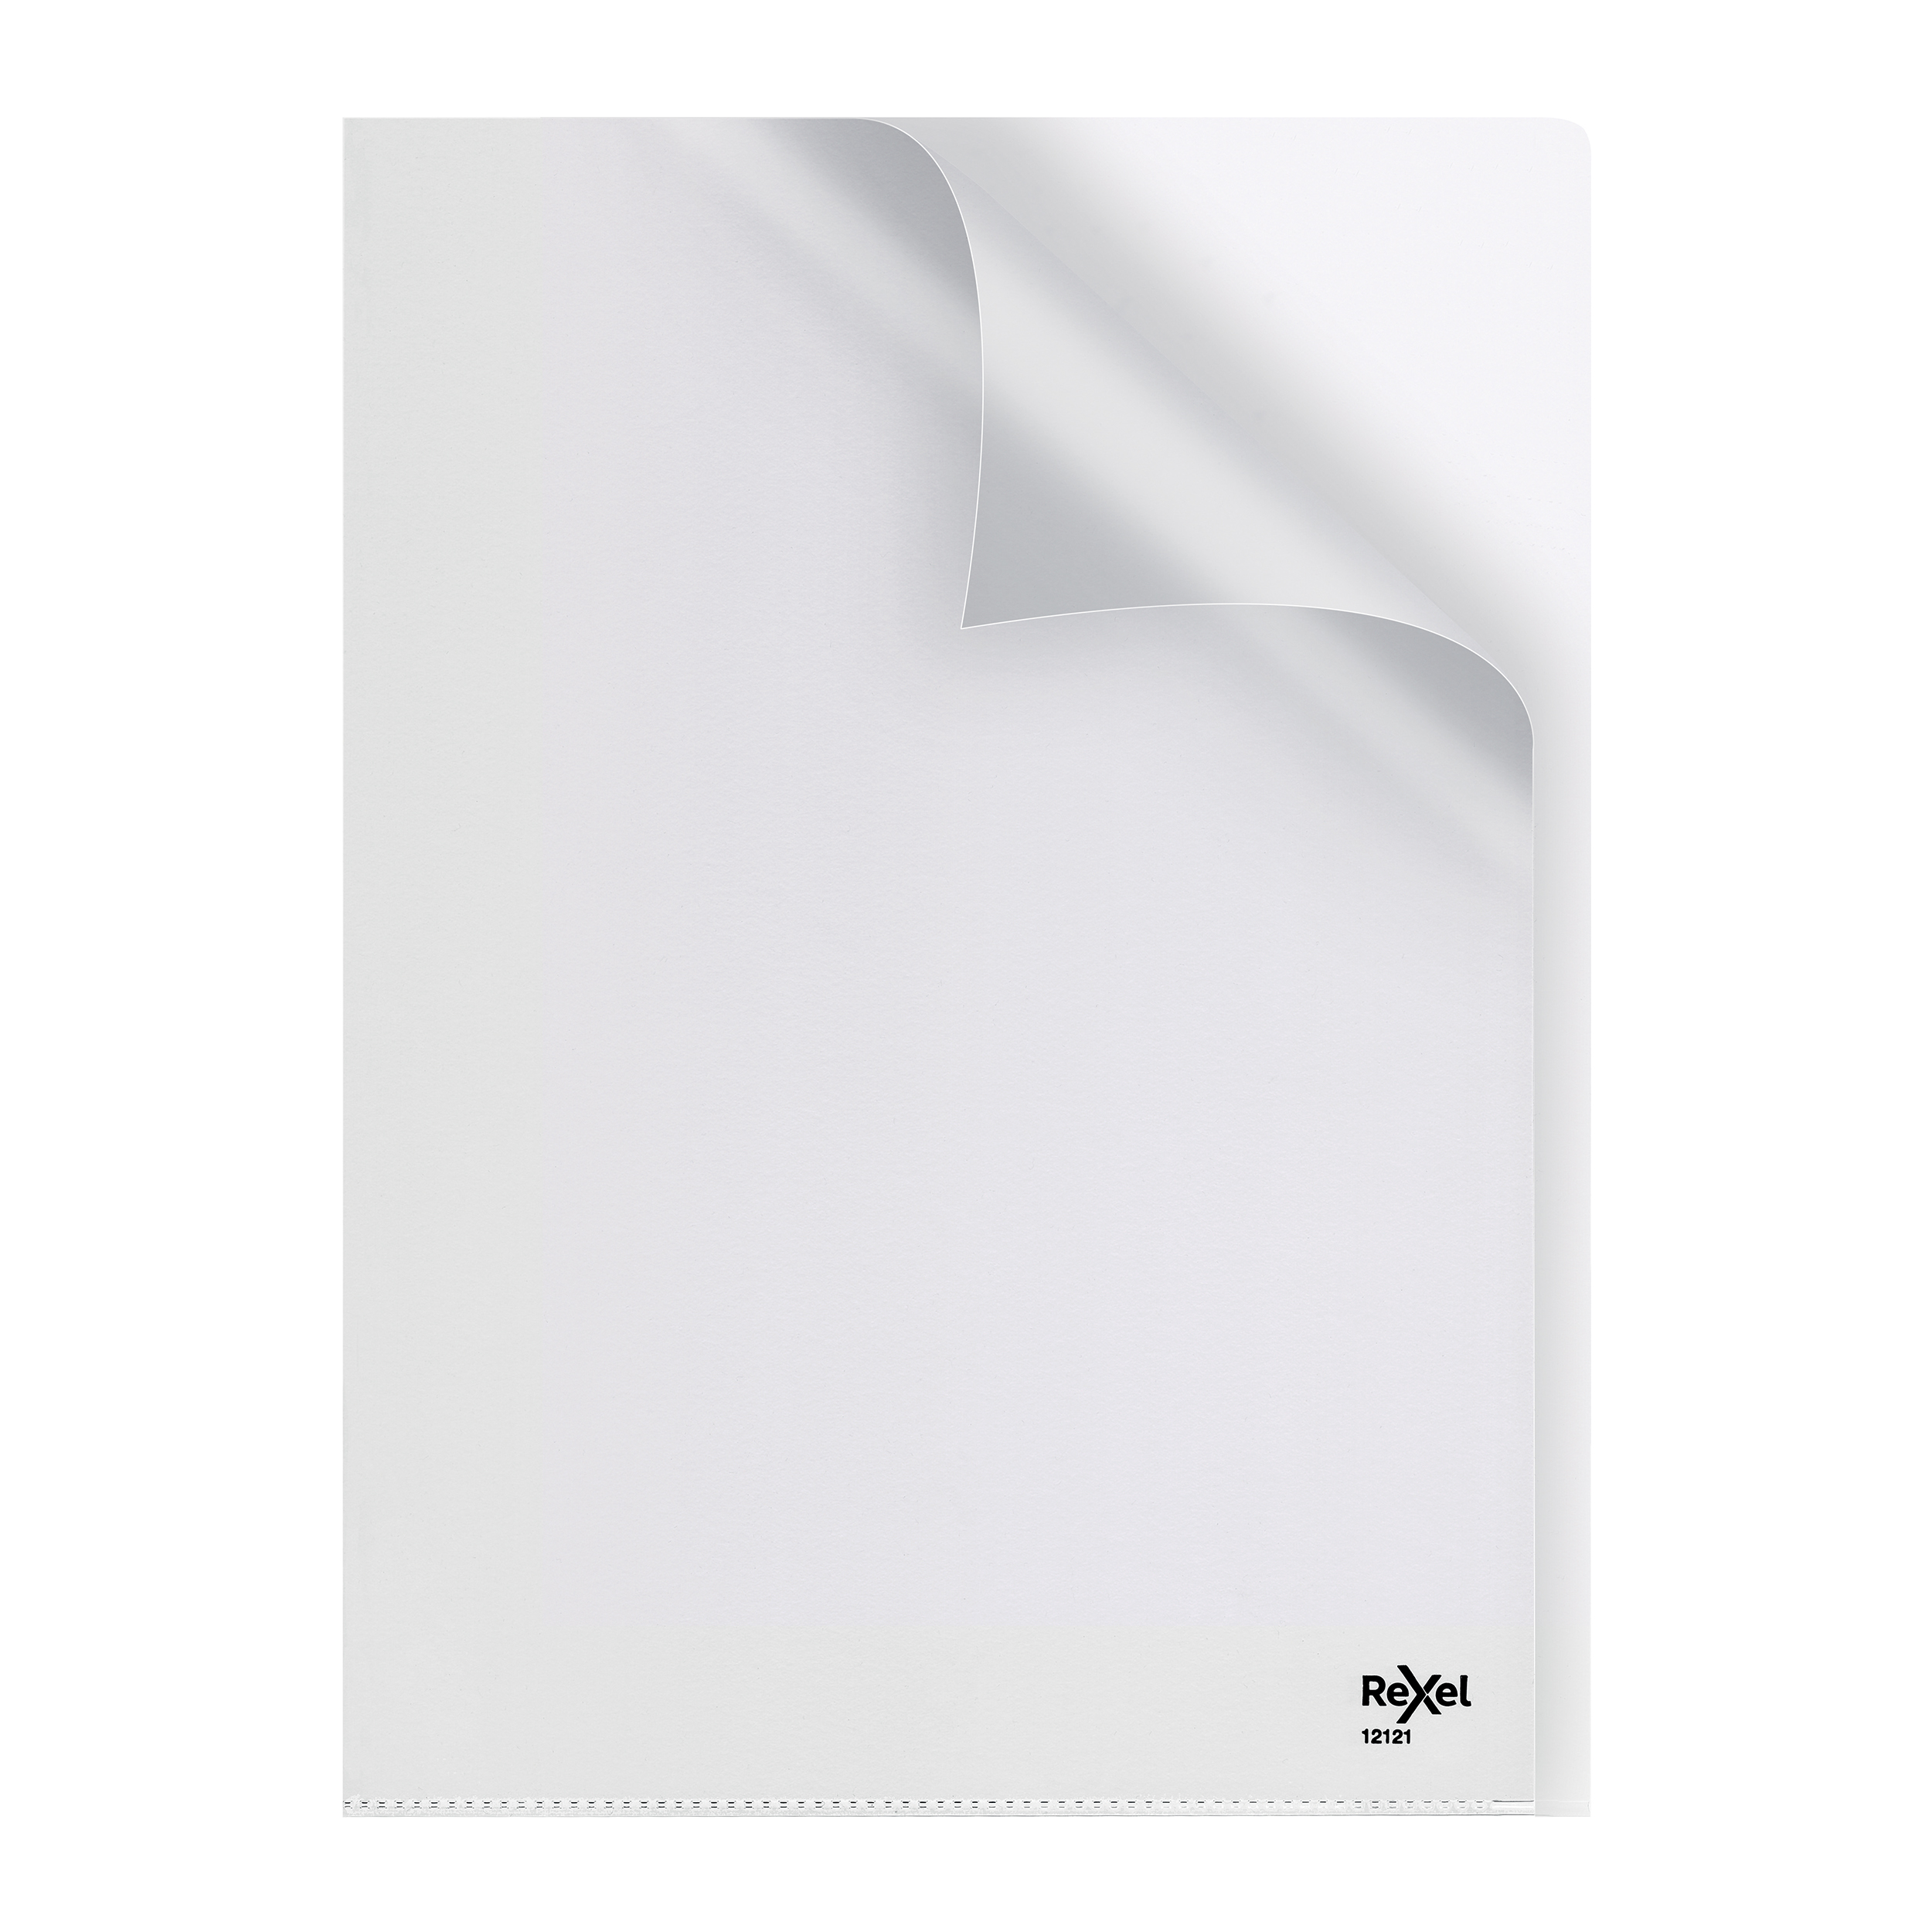 Rexel Nyrex Folder Cut Back A4 Clear Ref 12121 Pack 25